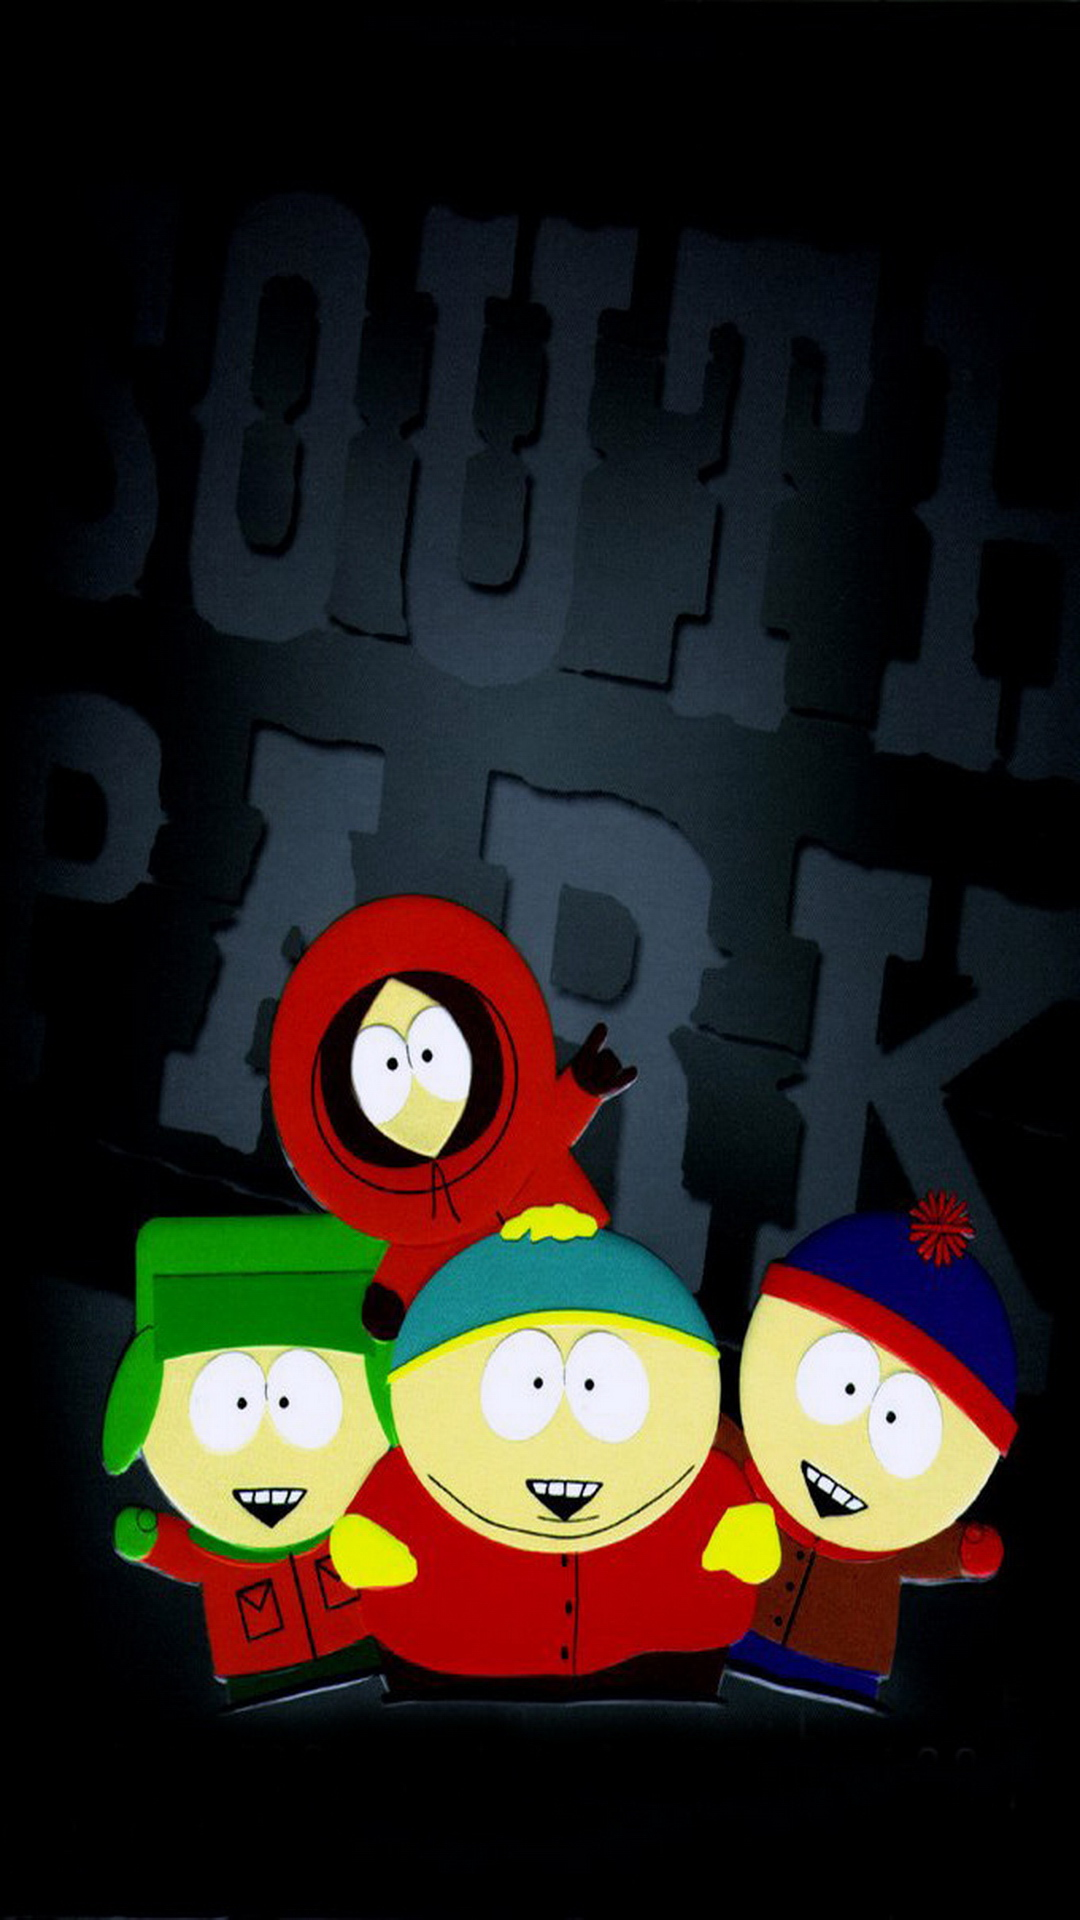 iPhone 5 wallpapers HD - South park, Backgrounds HTML code